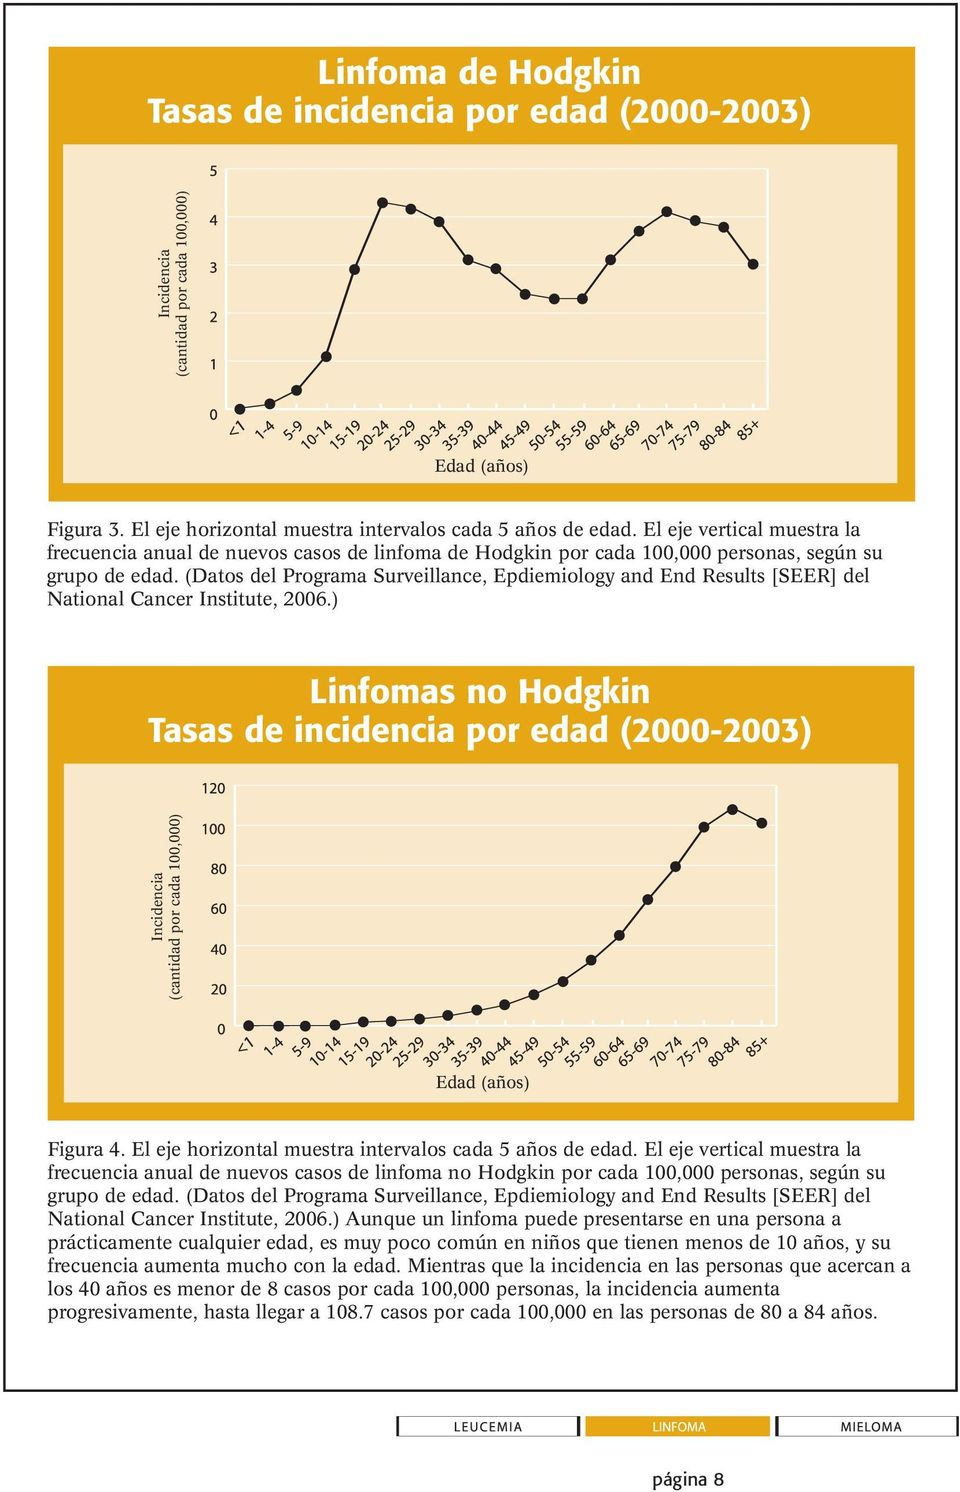 (Datos del Programa Surveillance, Epdiemiology and End Results [SEER] del National Cancer Institute, 2006.